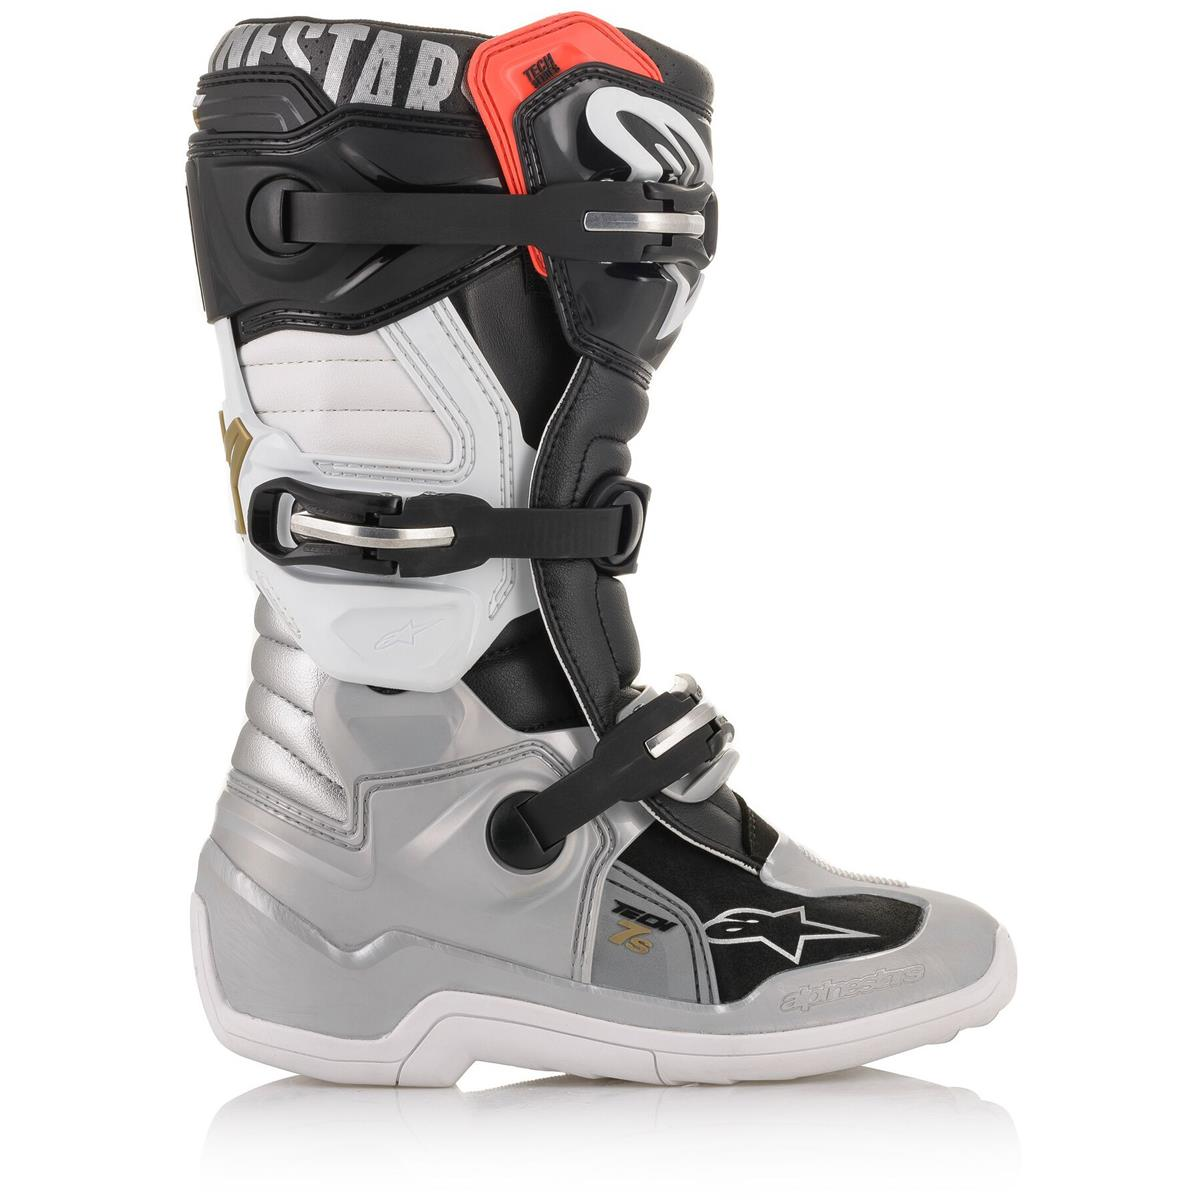 2015017 1829 2020 Alpinestars Youth Tech 7S Motocross Boots Black Silver White Gold Kinder Laarzen Stiefel Bottes Enfant